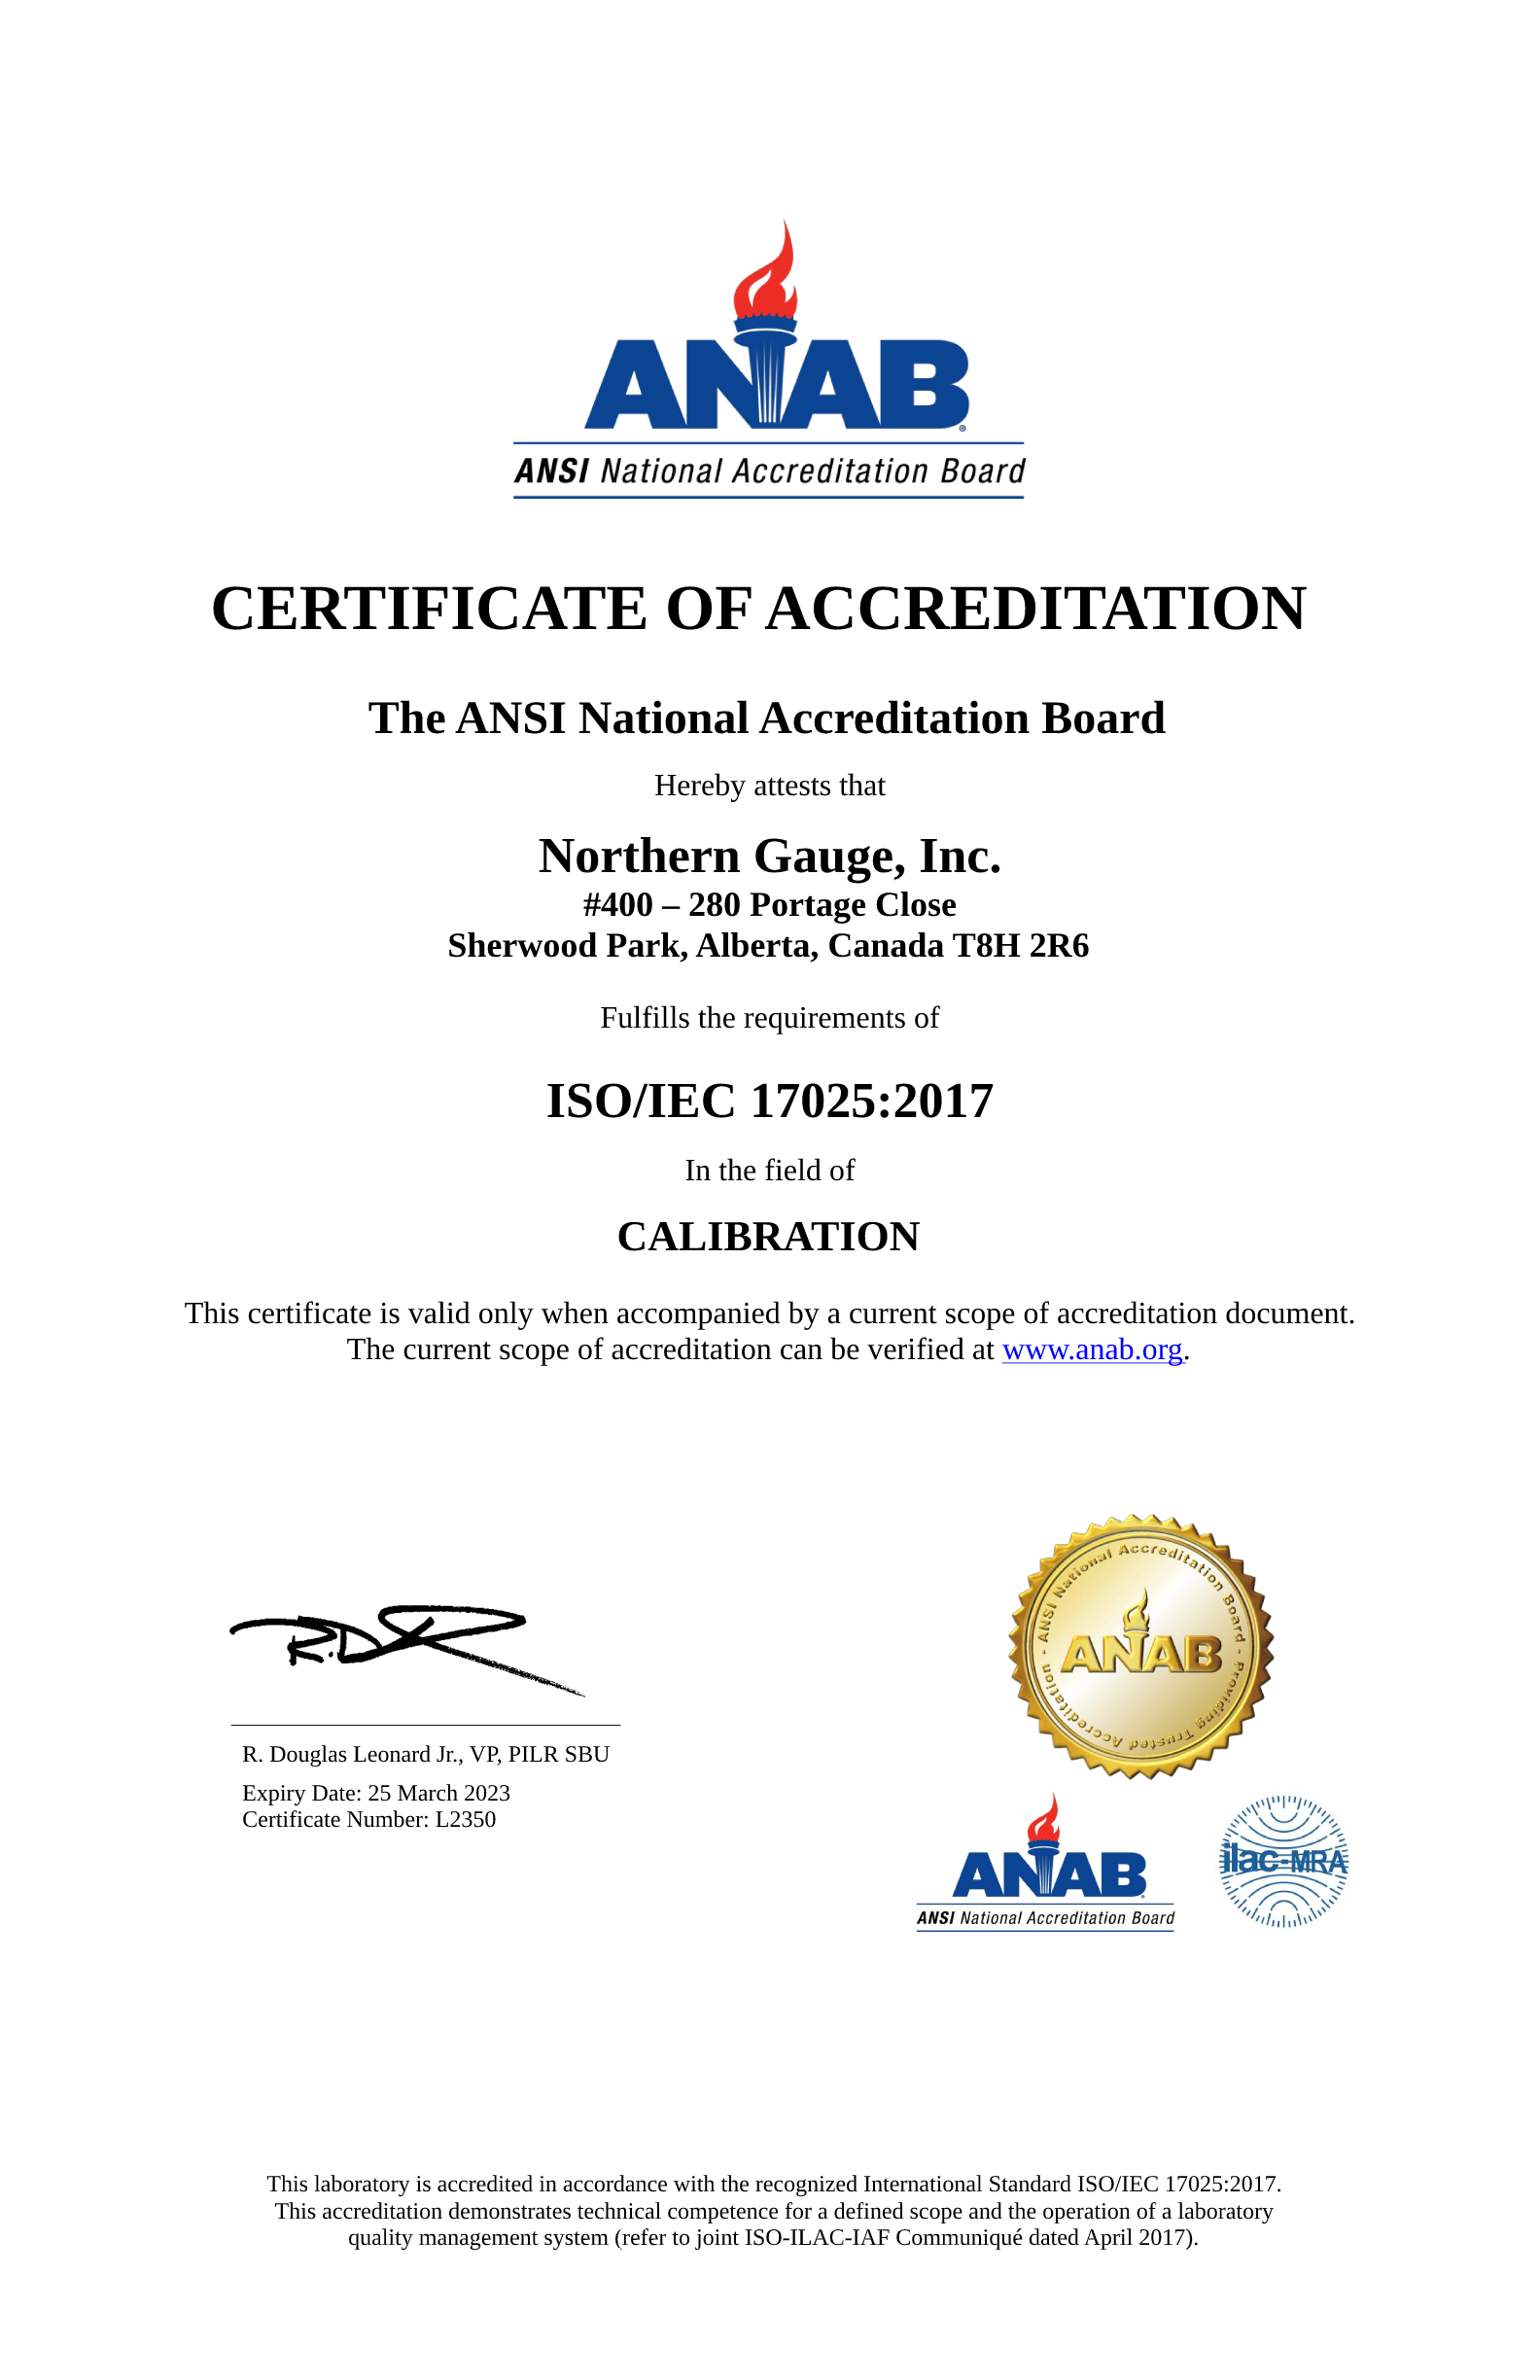 ANAB Certificate of Accreditation page 1